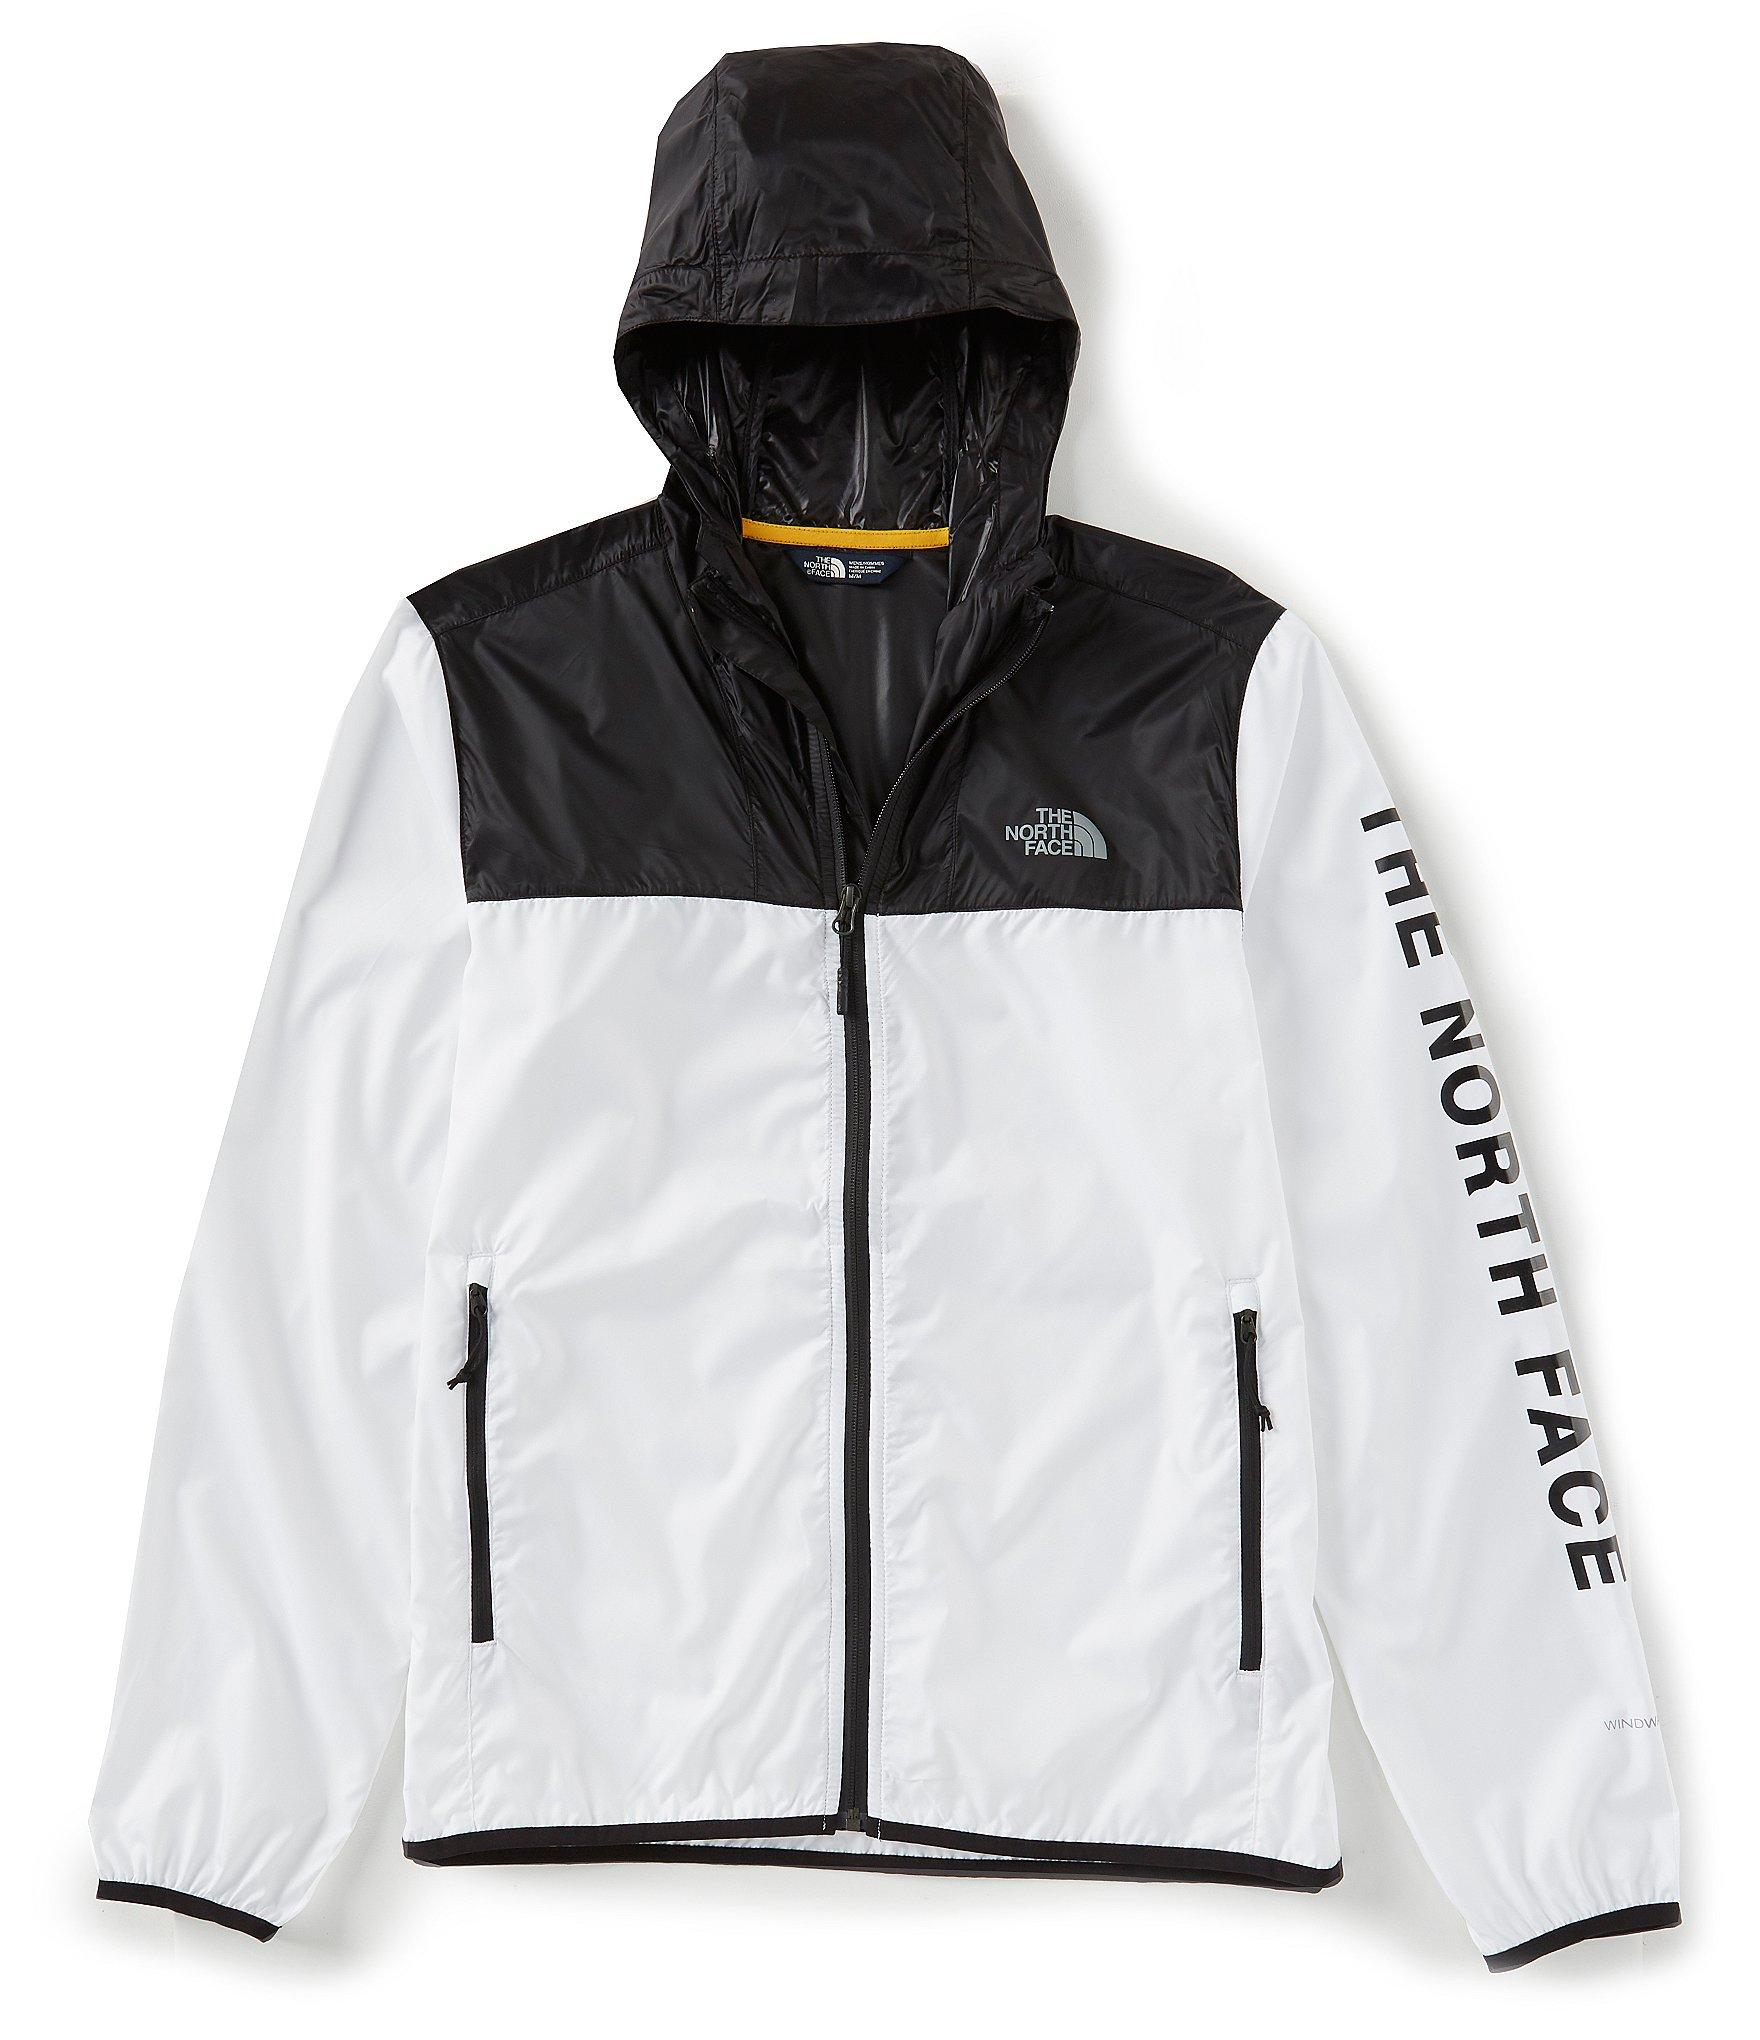 3670a6bd42d91 The North Face - Black Novelty Cyclone 2.0 Windwall Jacket for Men - Lyst.  View fullscreen